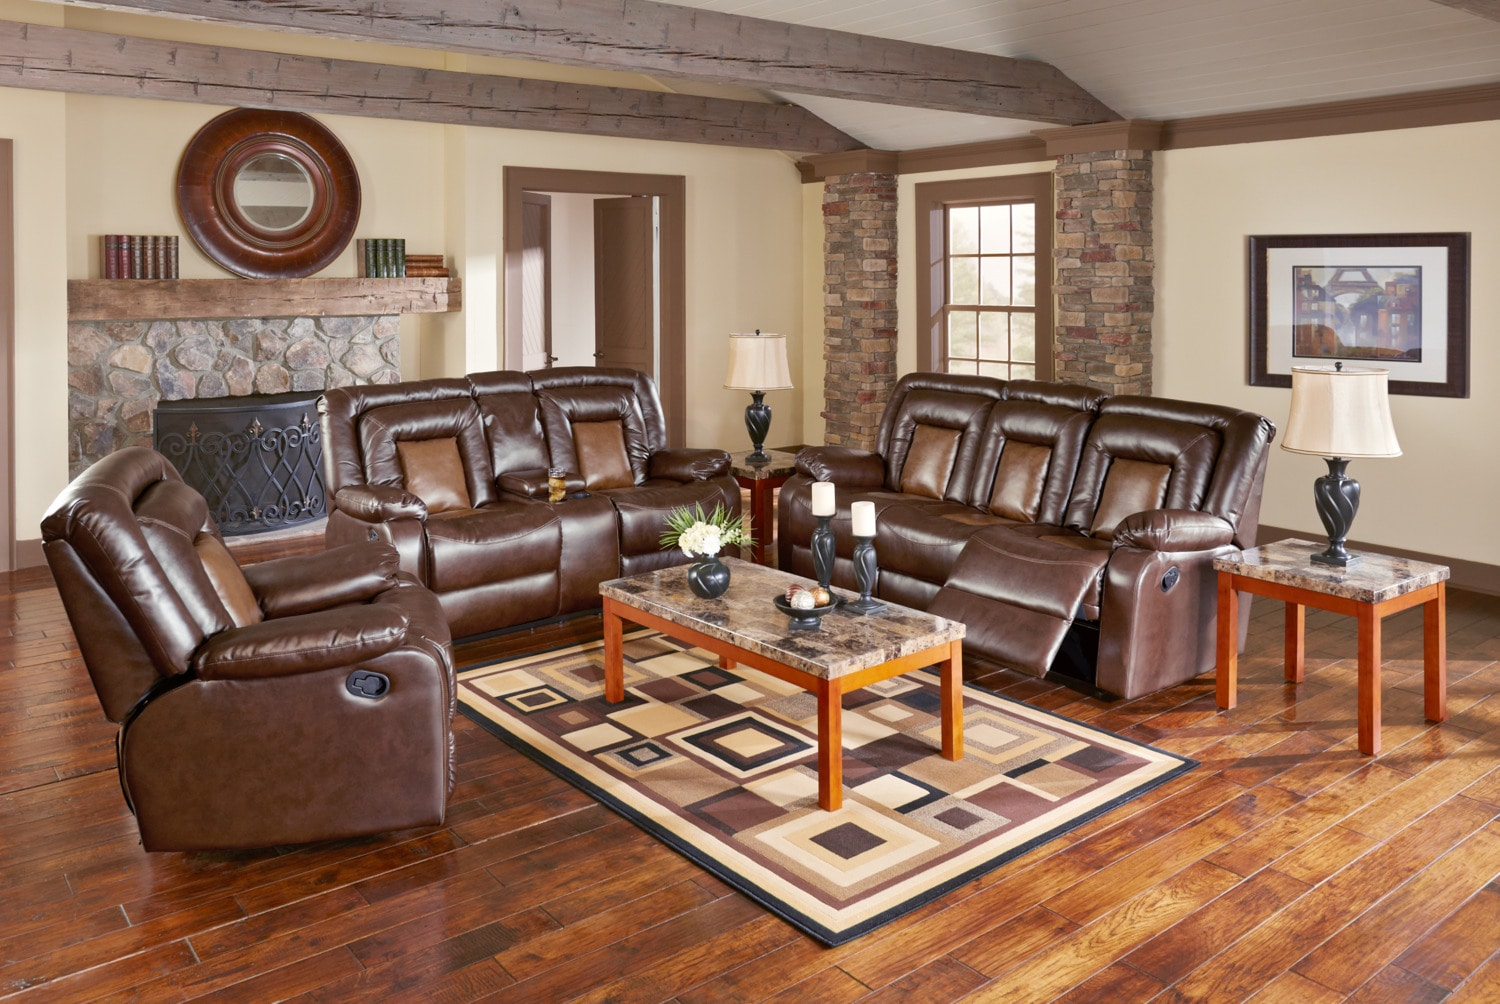 Mustang Dual-Reclining Sofa, Dual-Reclining Loveseat and Recliner Set - Brown